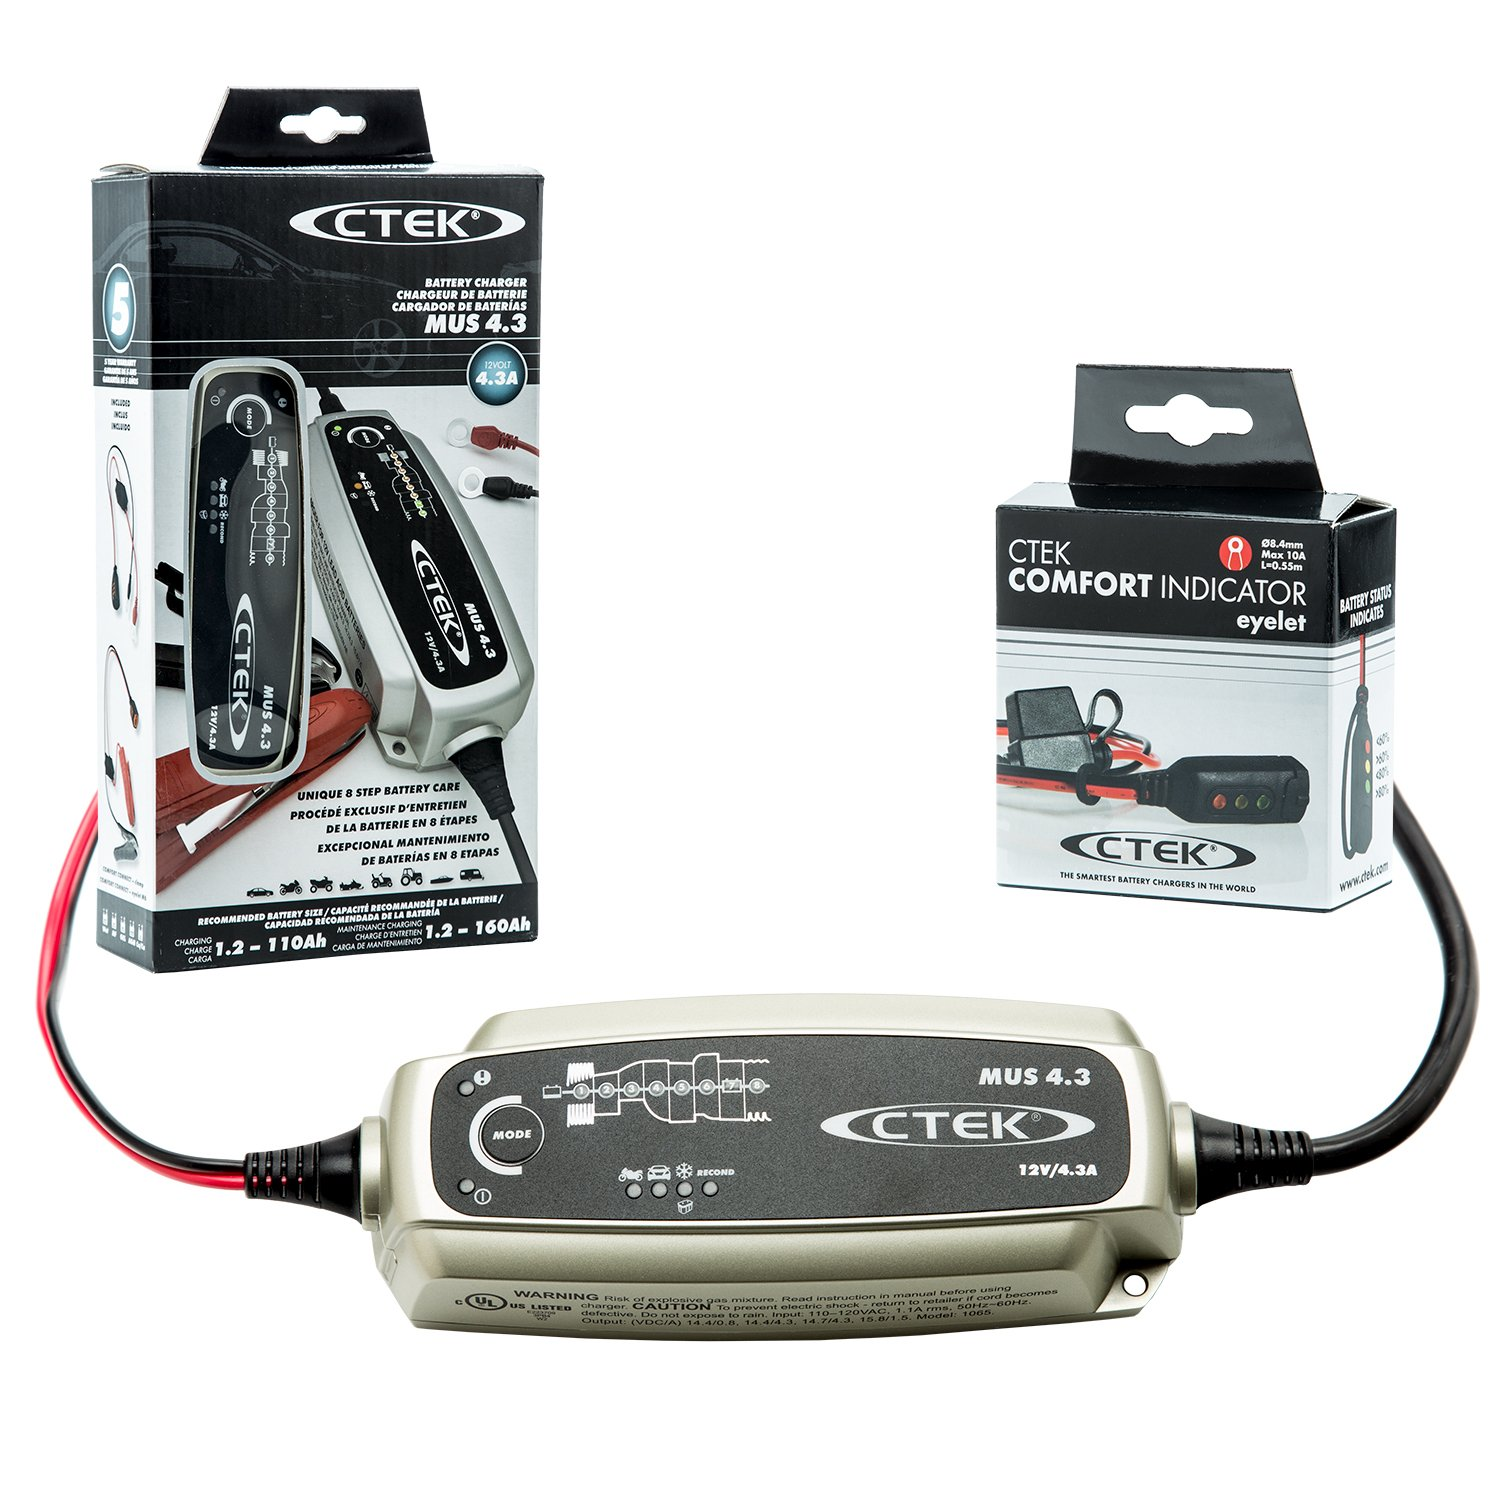 CTEK (56-864) MUS 4.3 12 Volt Fully Automatic 8 Step Battery Charger with (56-382) Indicator Eyelet Accessory